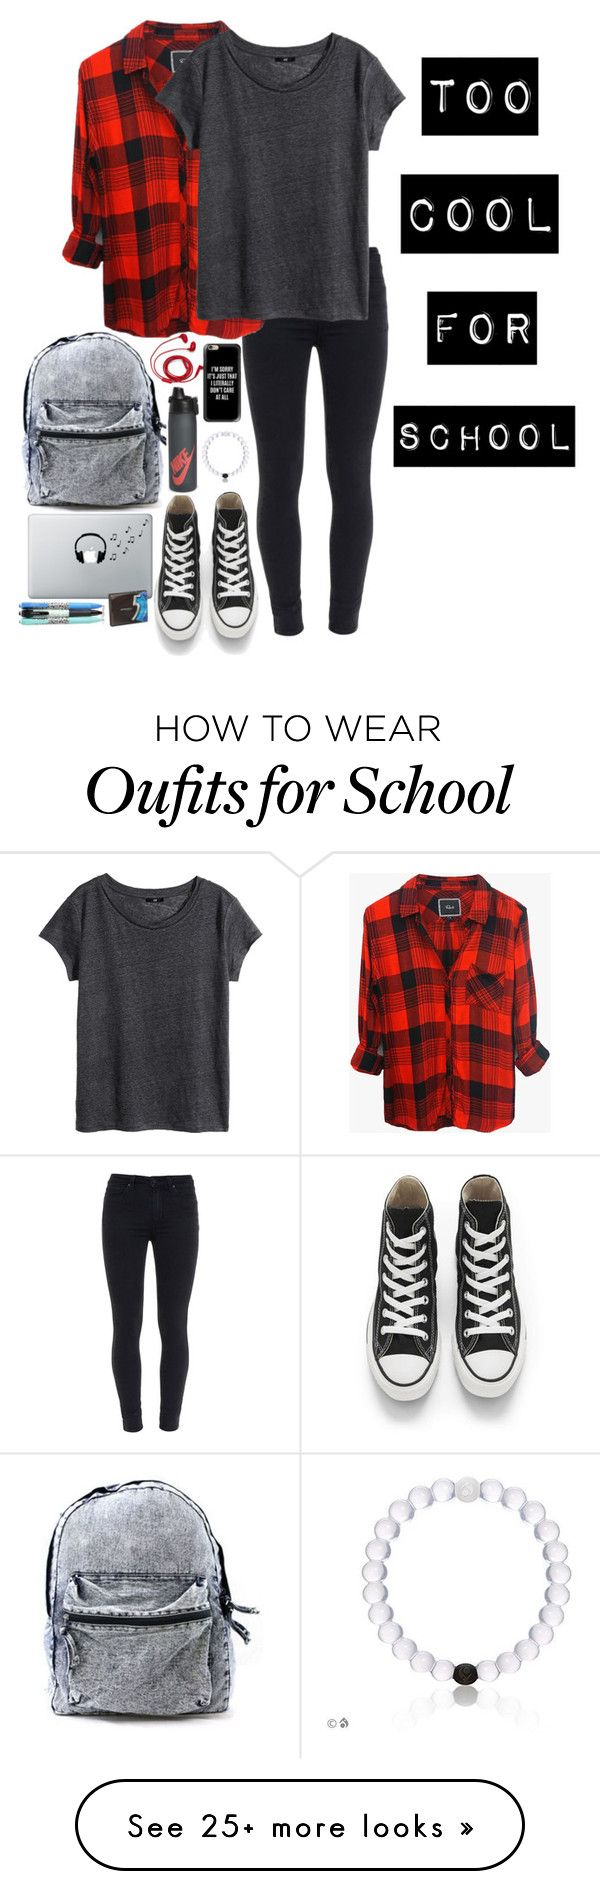 "This is perfect for my Best Friend  ~~~~~~~~~~~~~~~~~~~~~~~~~~  ""Too cool for school :P"" by creationsbycristina on Polyvore featuring Paige Denim, Rails, H&M, Converse, FOSSIL, Casetify, NIKE, Music Notes and Vera Bradley"